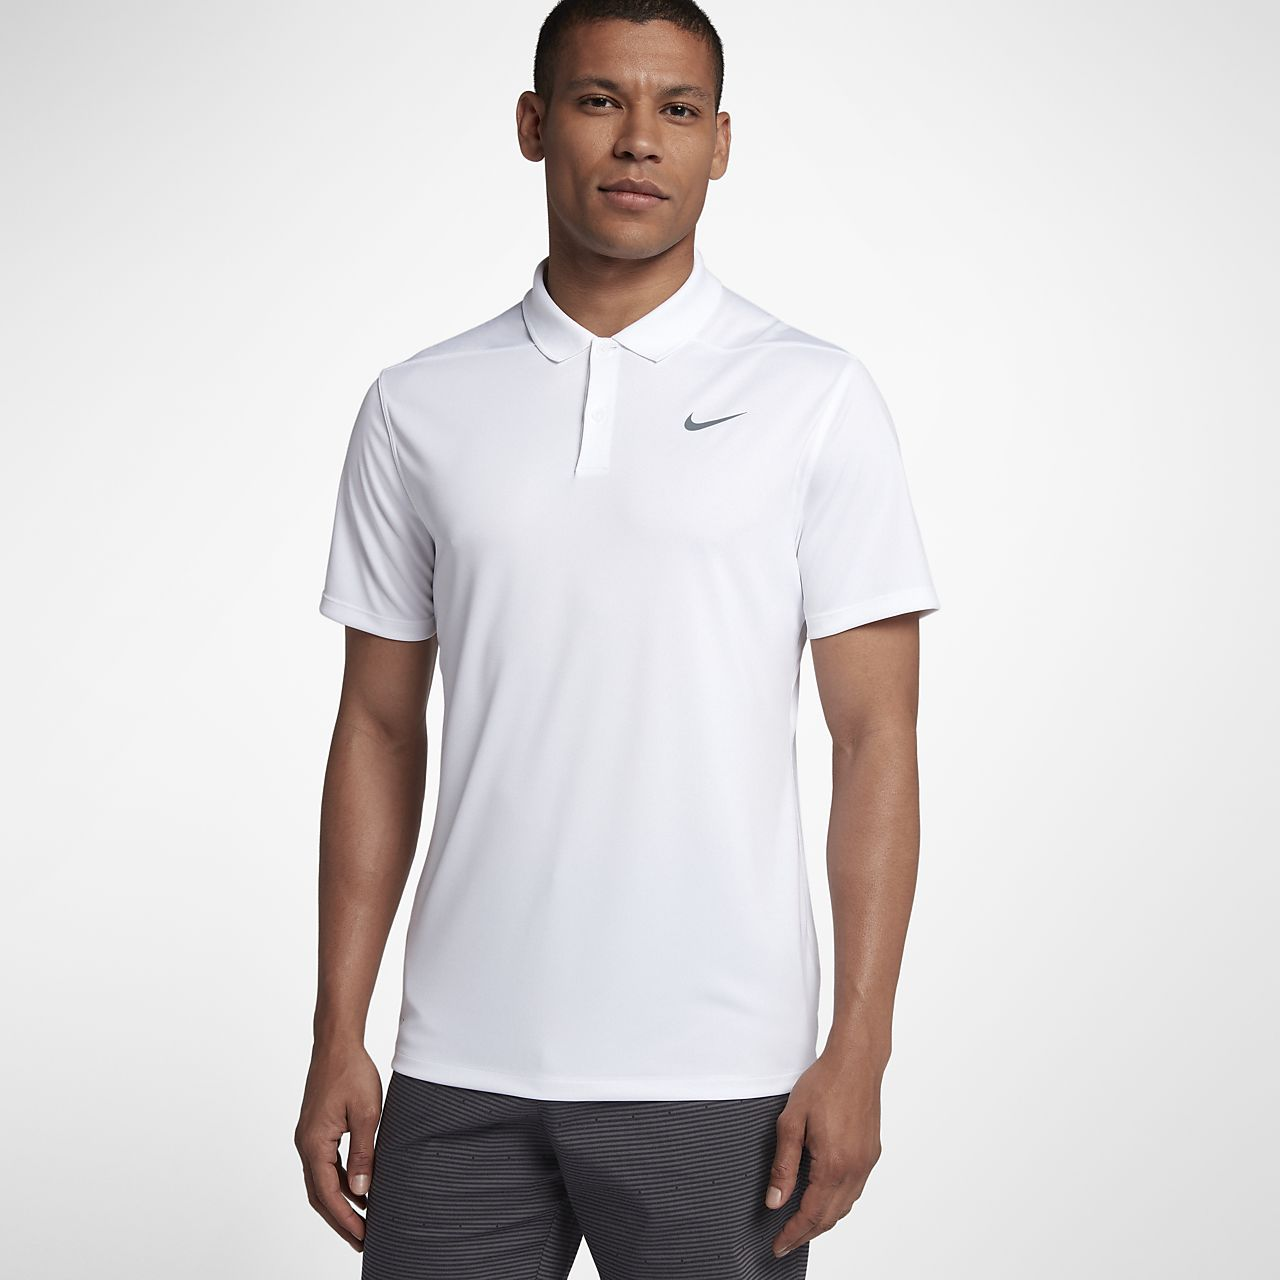 68e0b485c300 Nike Dri-FIT Victory Men s Slim-Fit Golf Polo. Nike.com GB